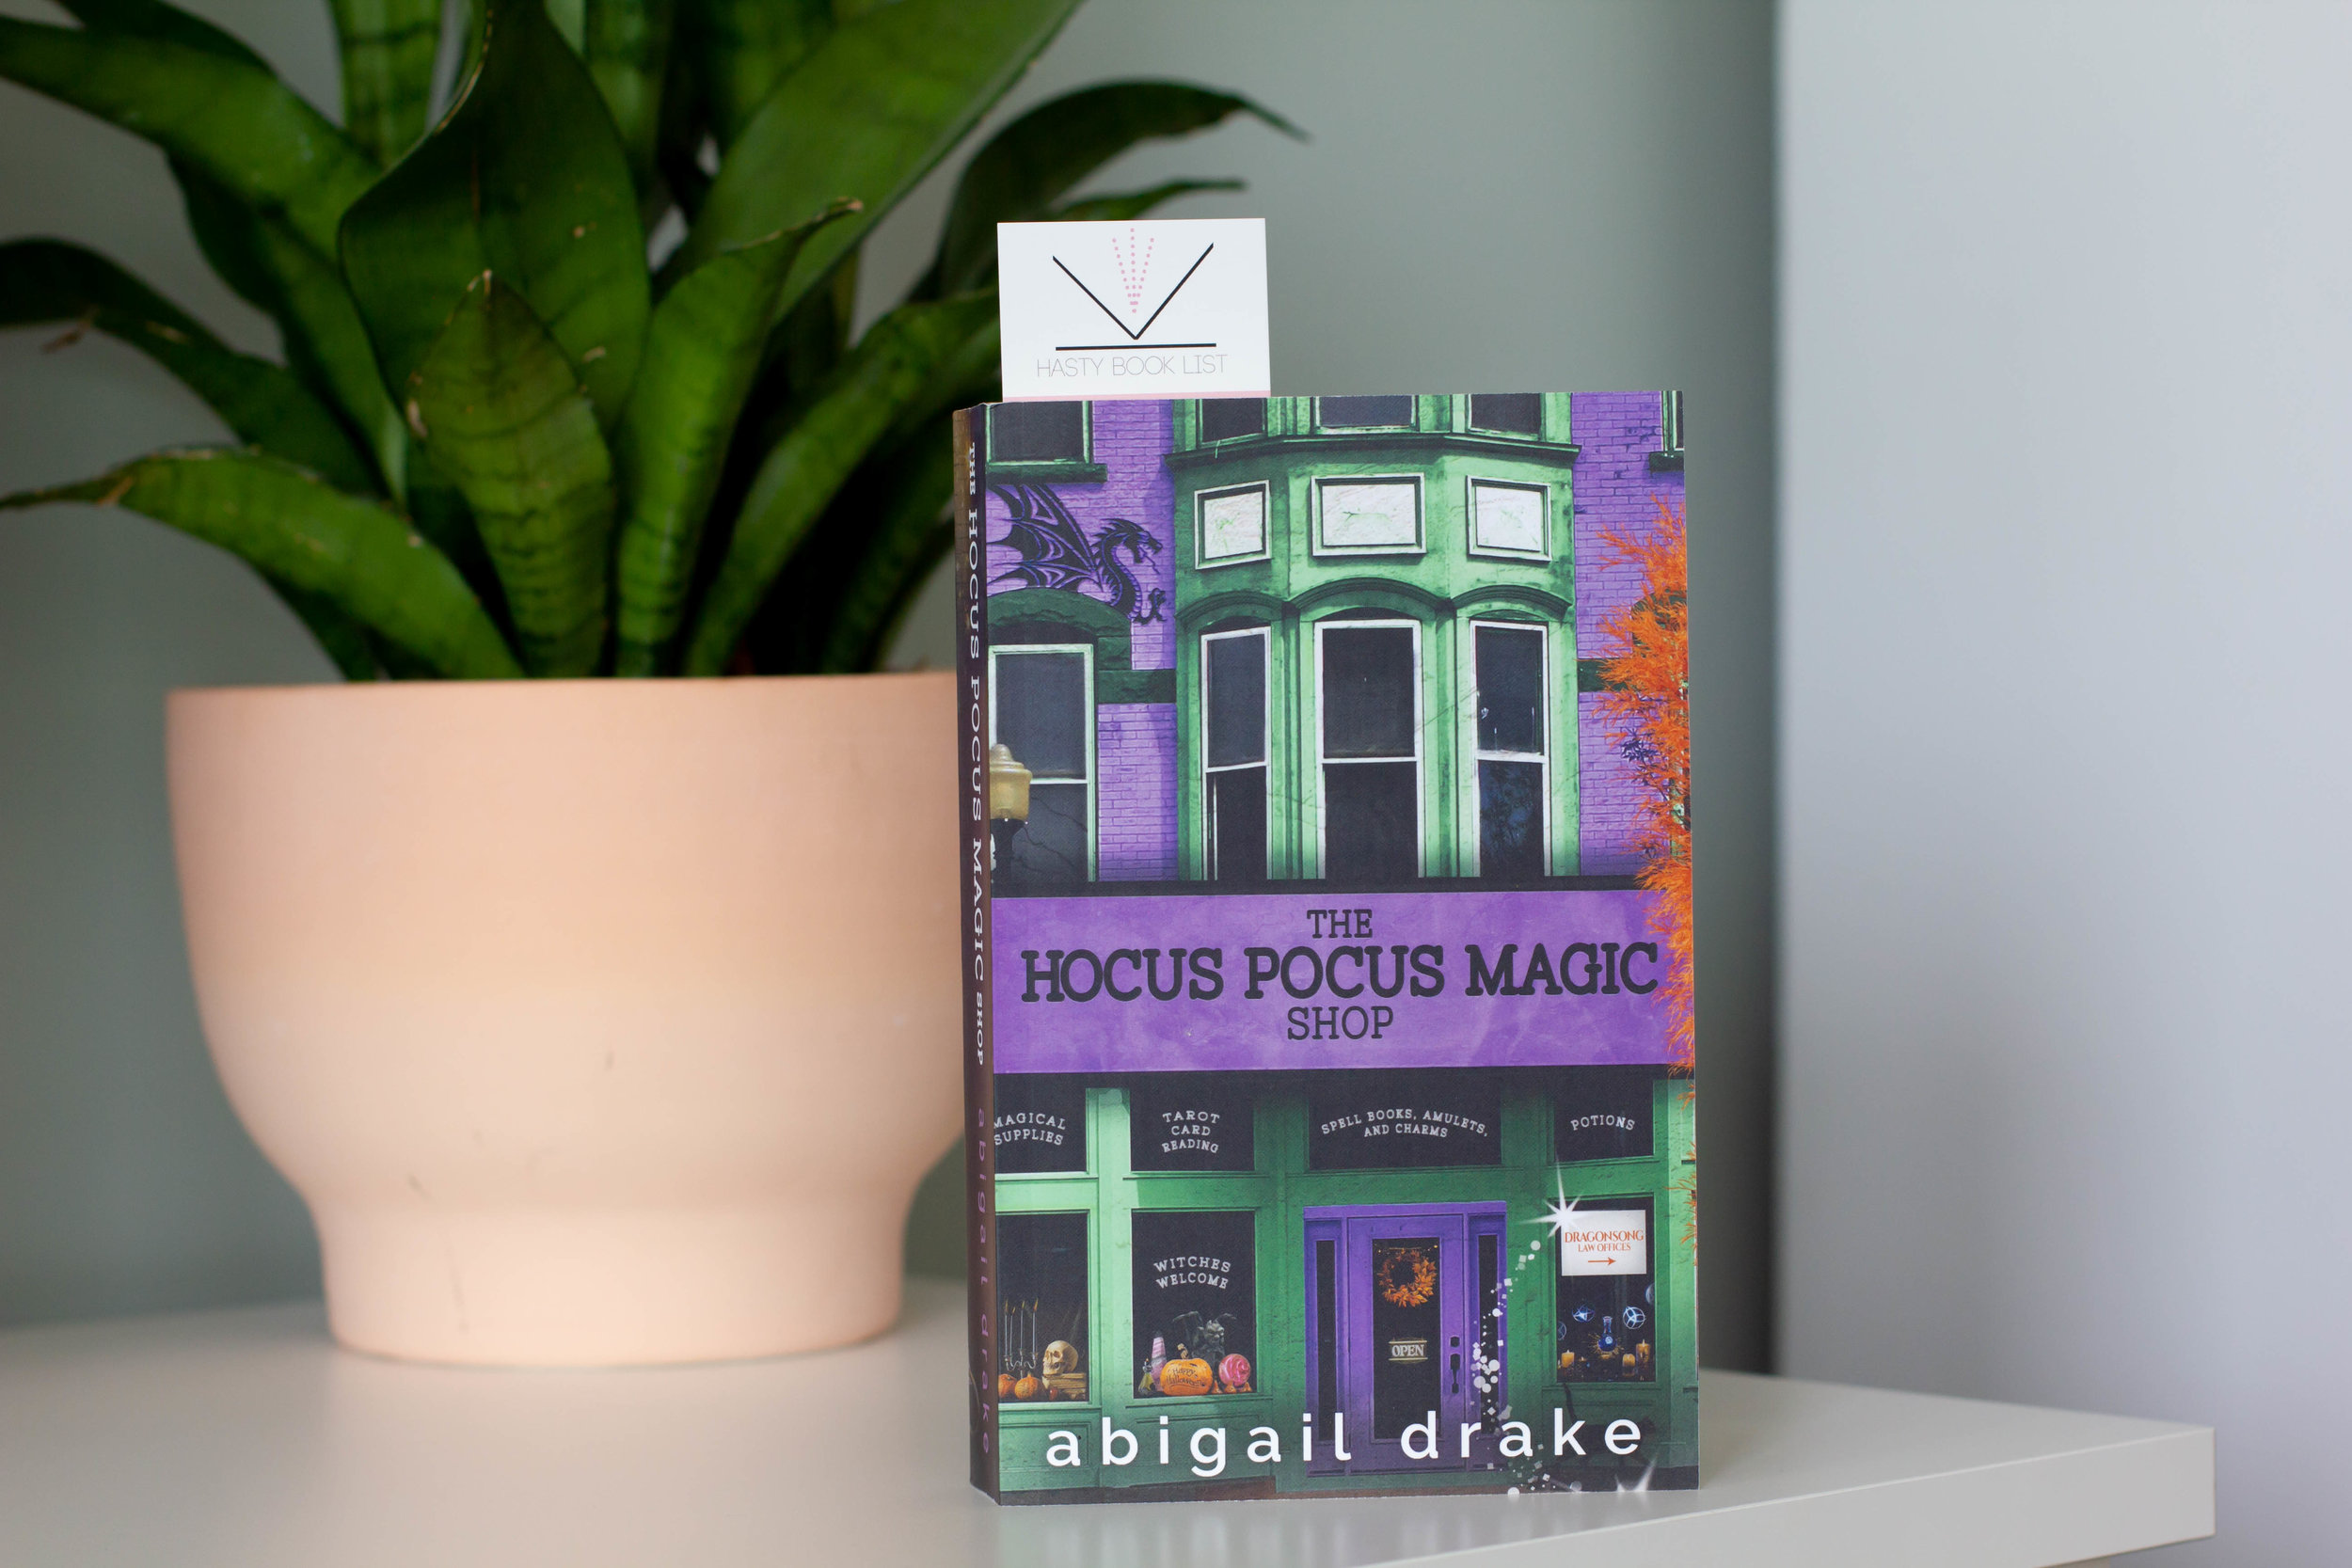 The Hocus Pocus Magic Shop by Abigail Drake - The Hocus Pocus Magic Shop is the second book in Abigail Drake's South Side Stories series. Check out her author page to grab the first book in the series, The Enchanted Garden Cafe!